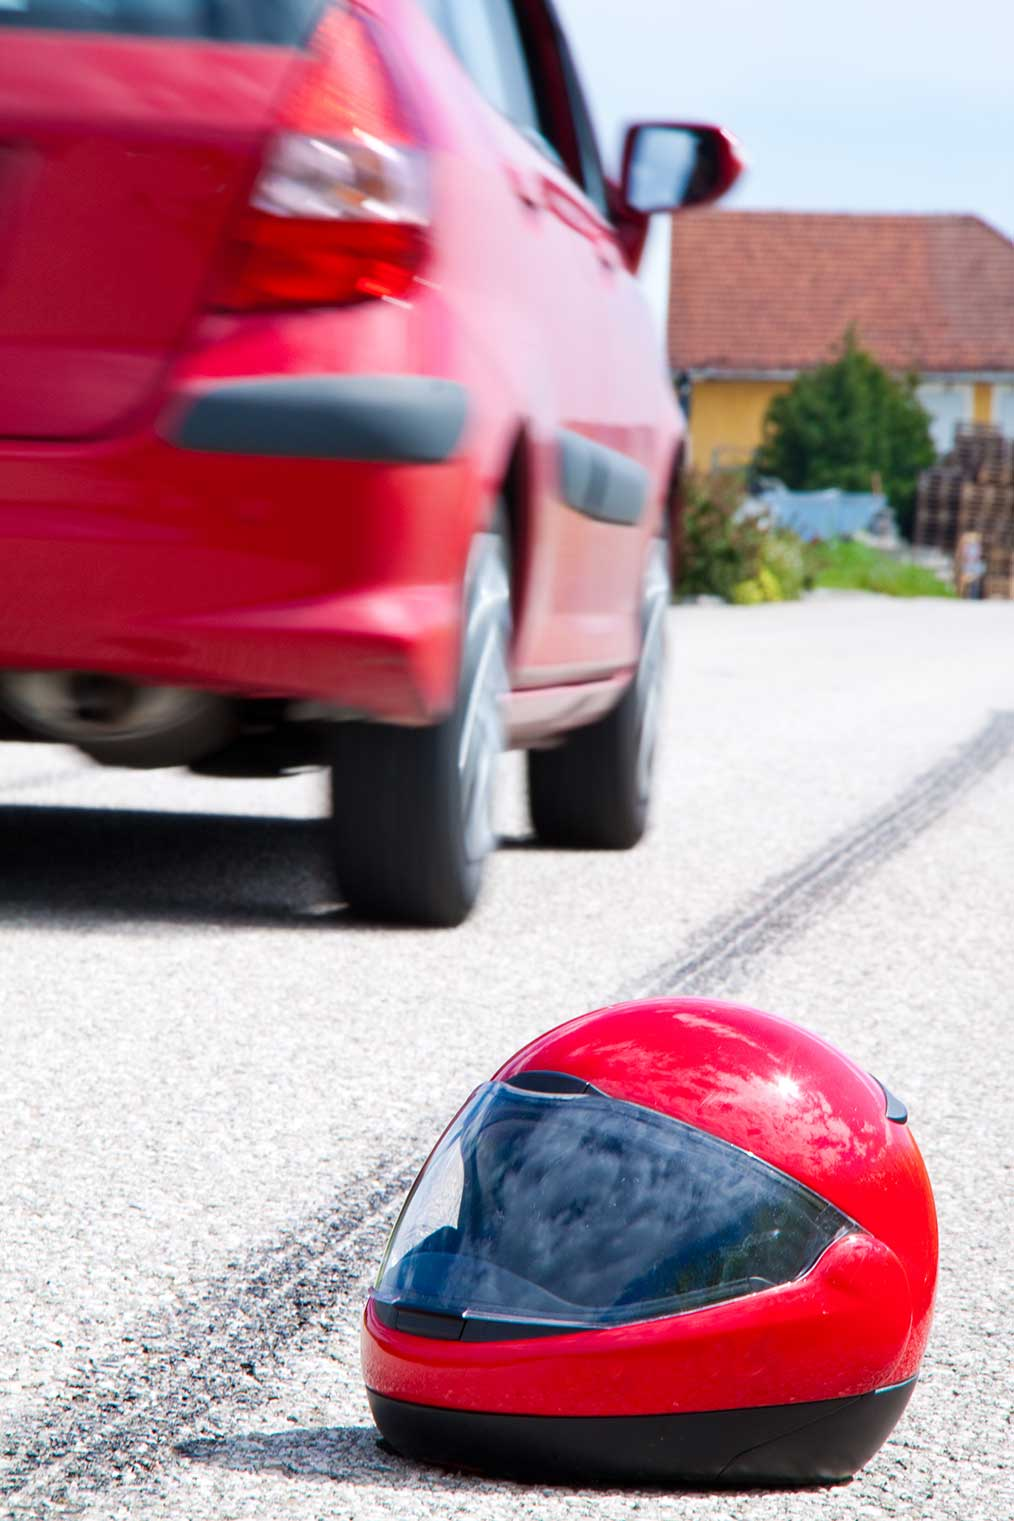 Traffic-Safety-Common-Injuries-Altus-ER-Centers-Texas